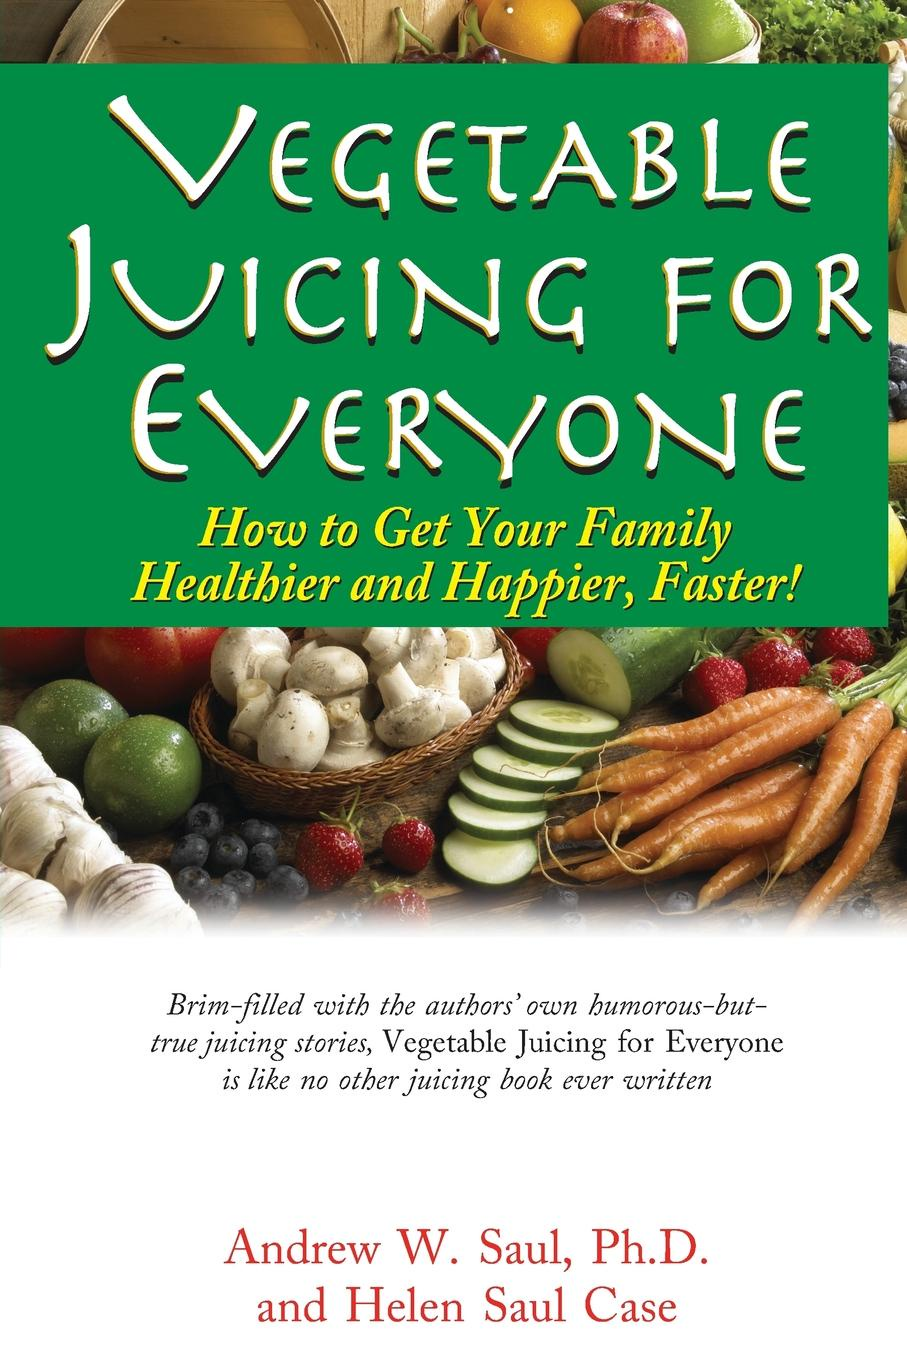 Ph.D. Andrew W. Saul, Helen Saul Case Vegetable Juicing for Everyone. How to Get Your Family Healther and Happier, Faster. michael burchell no excuses how you can turn any workplace into a great one